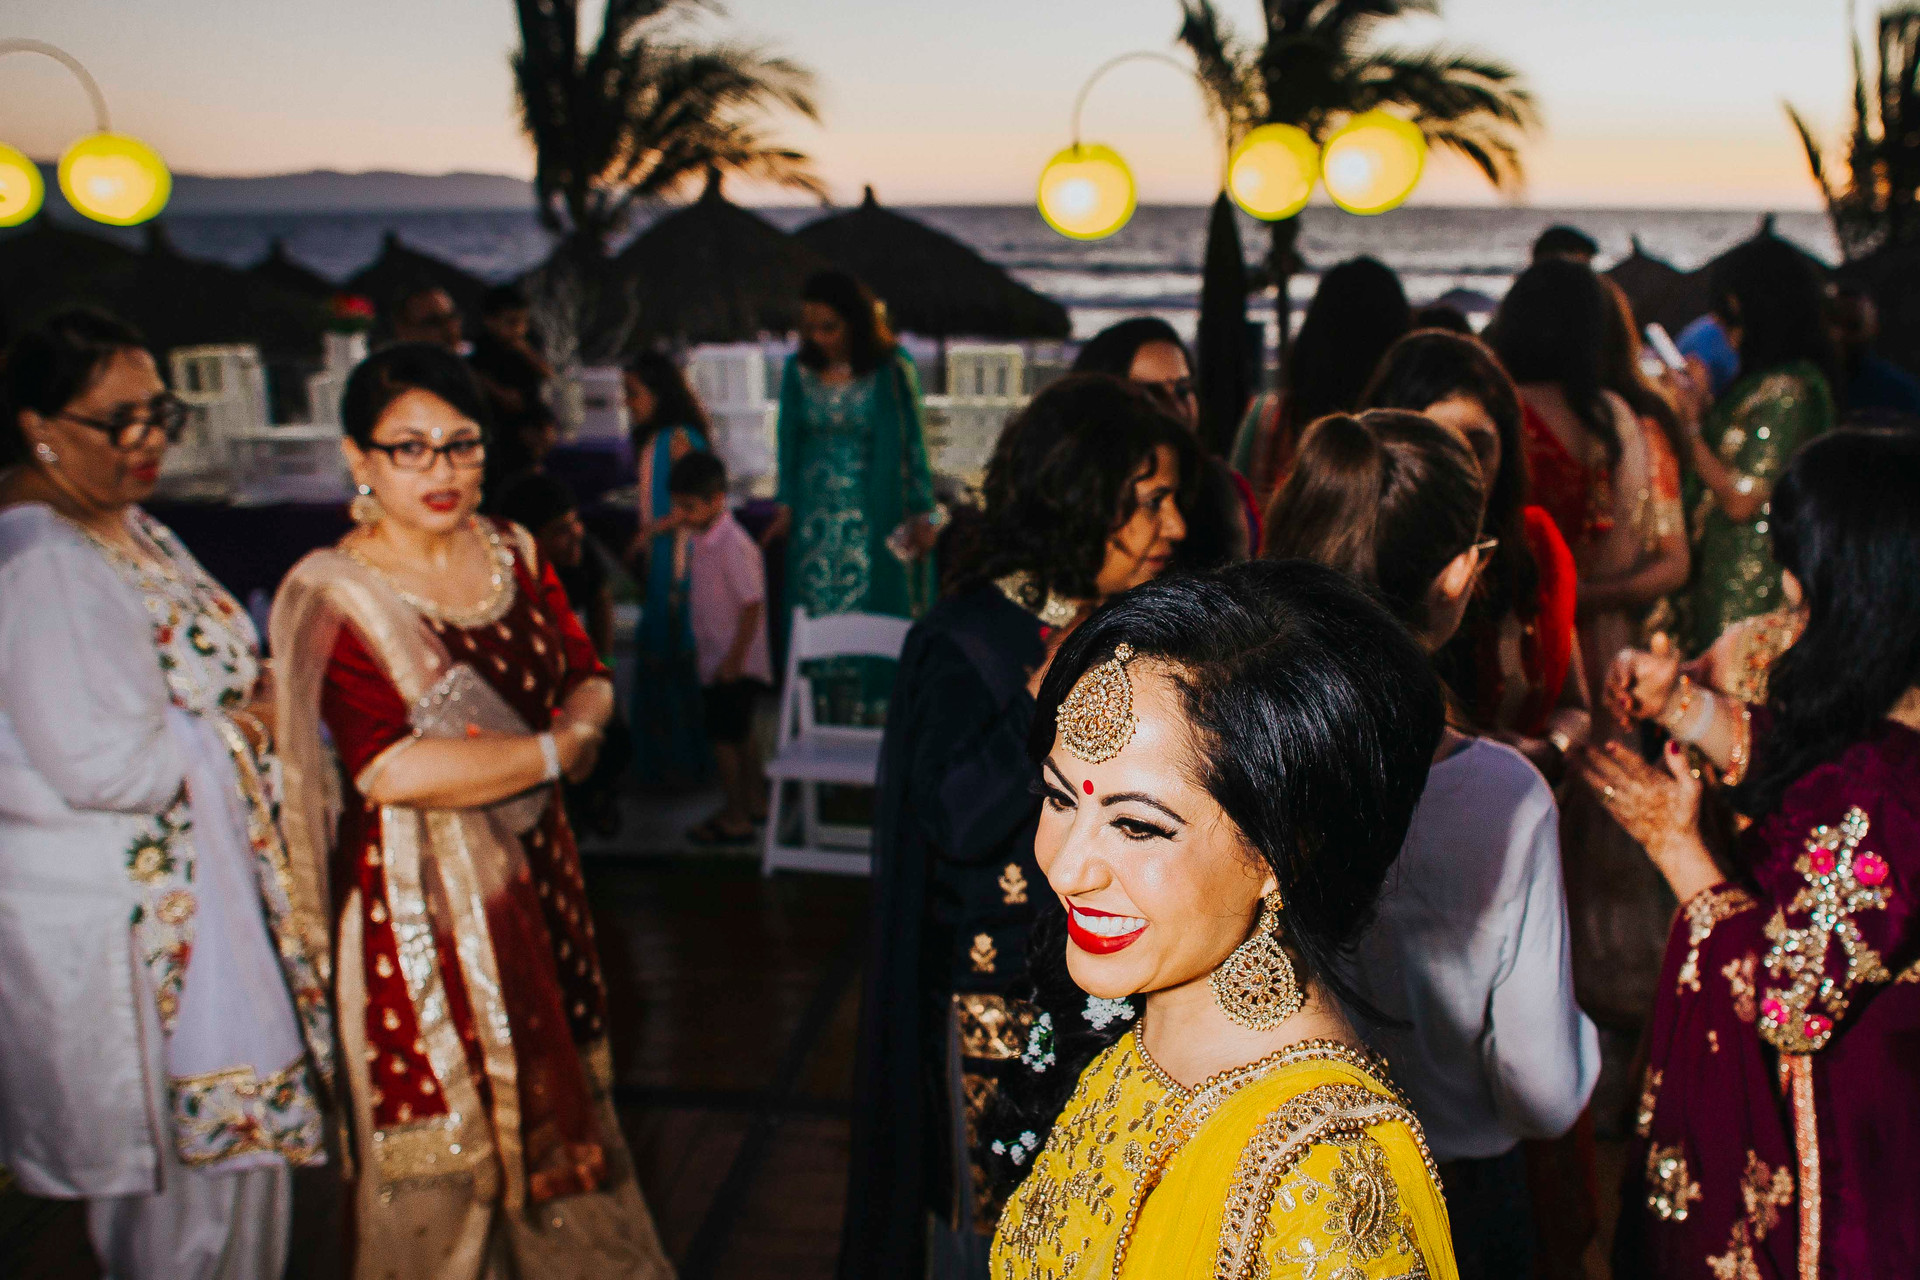 Indian Wedding in Mexico3.JPG